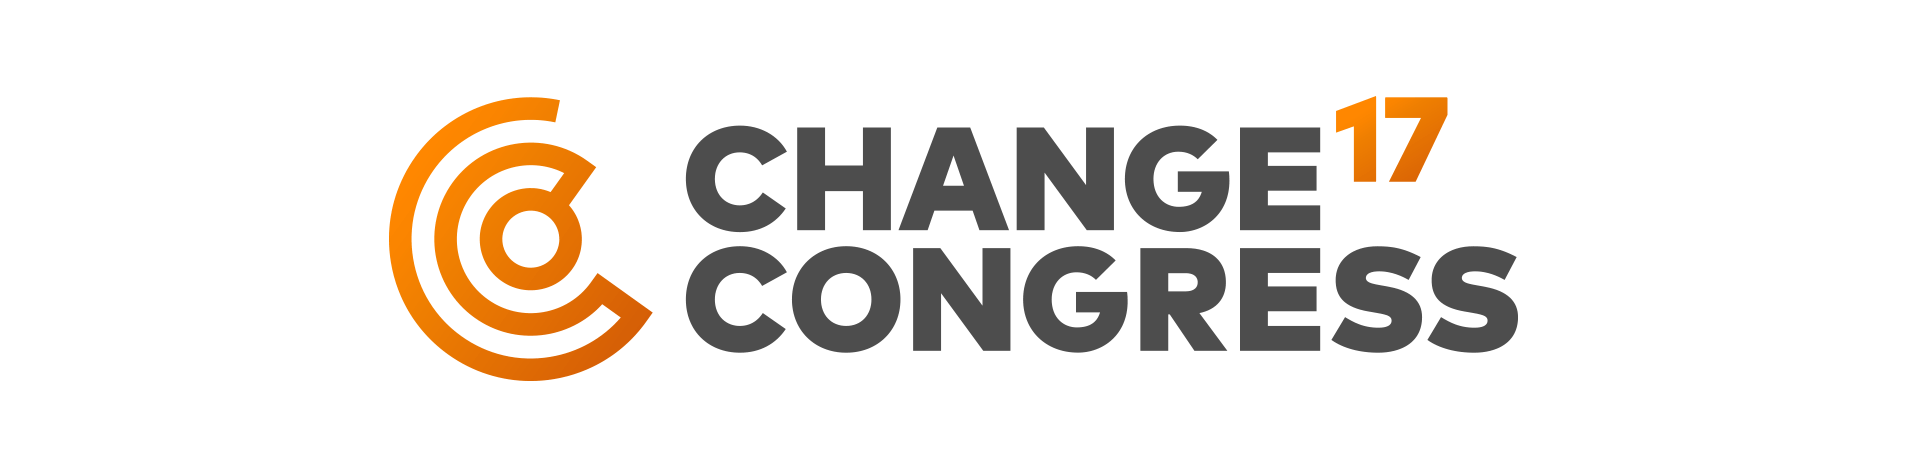 Change Congress 2017 Logo